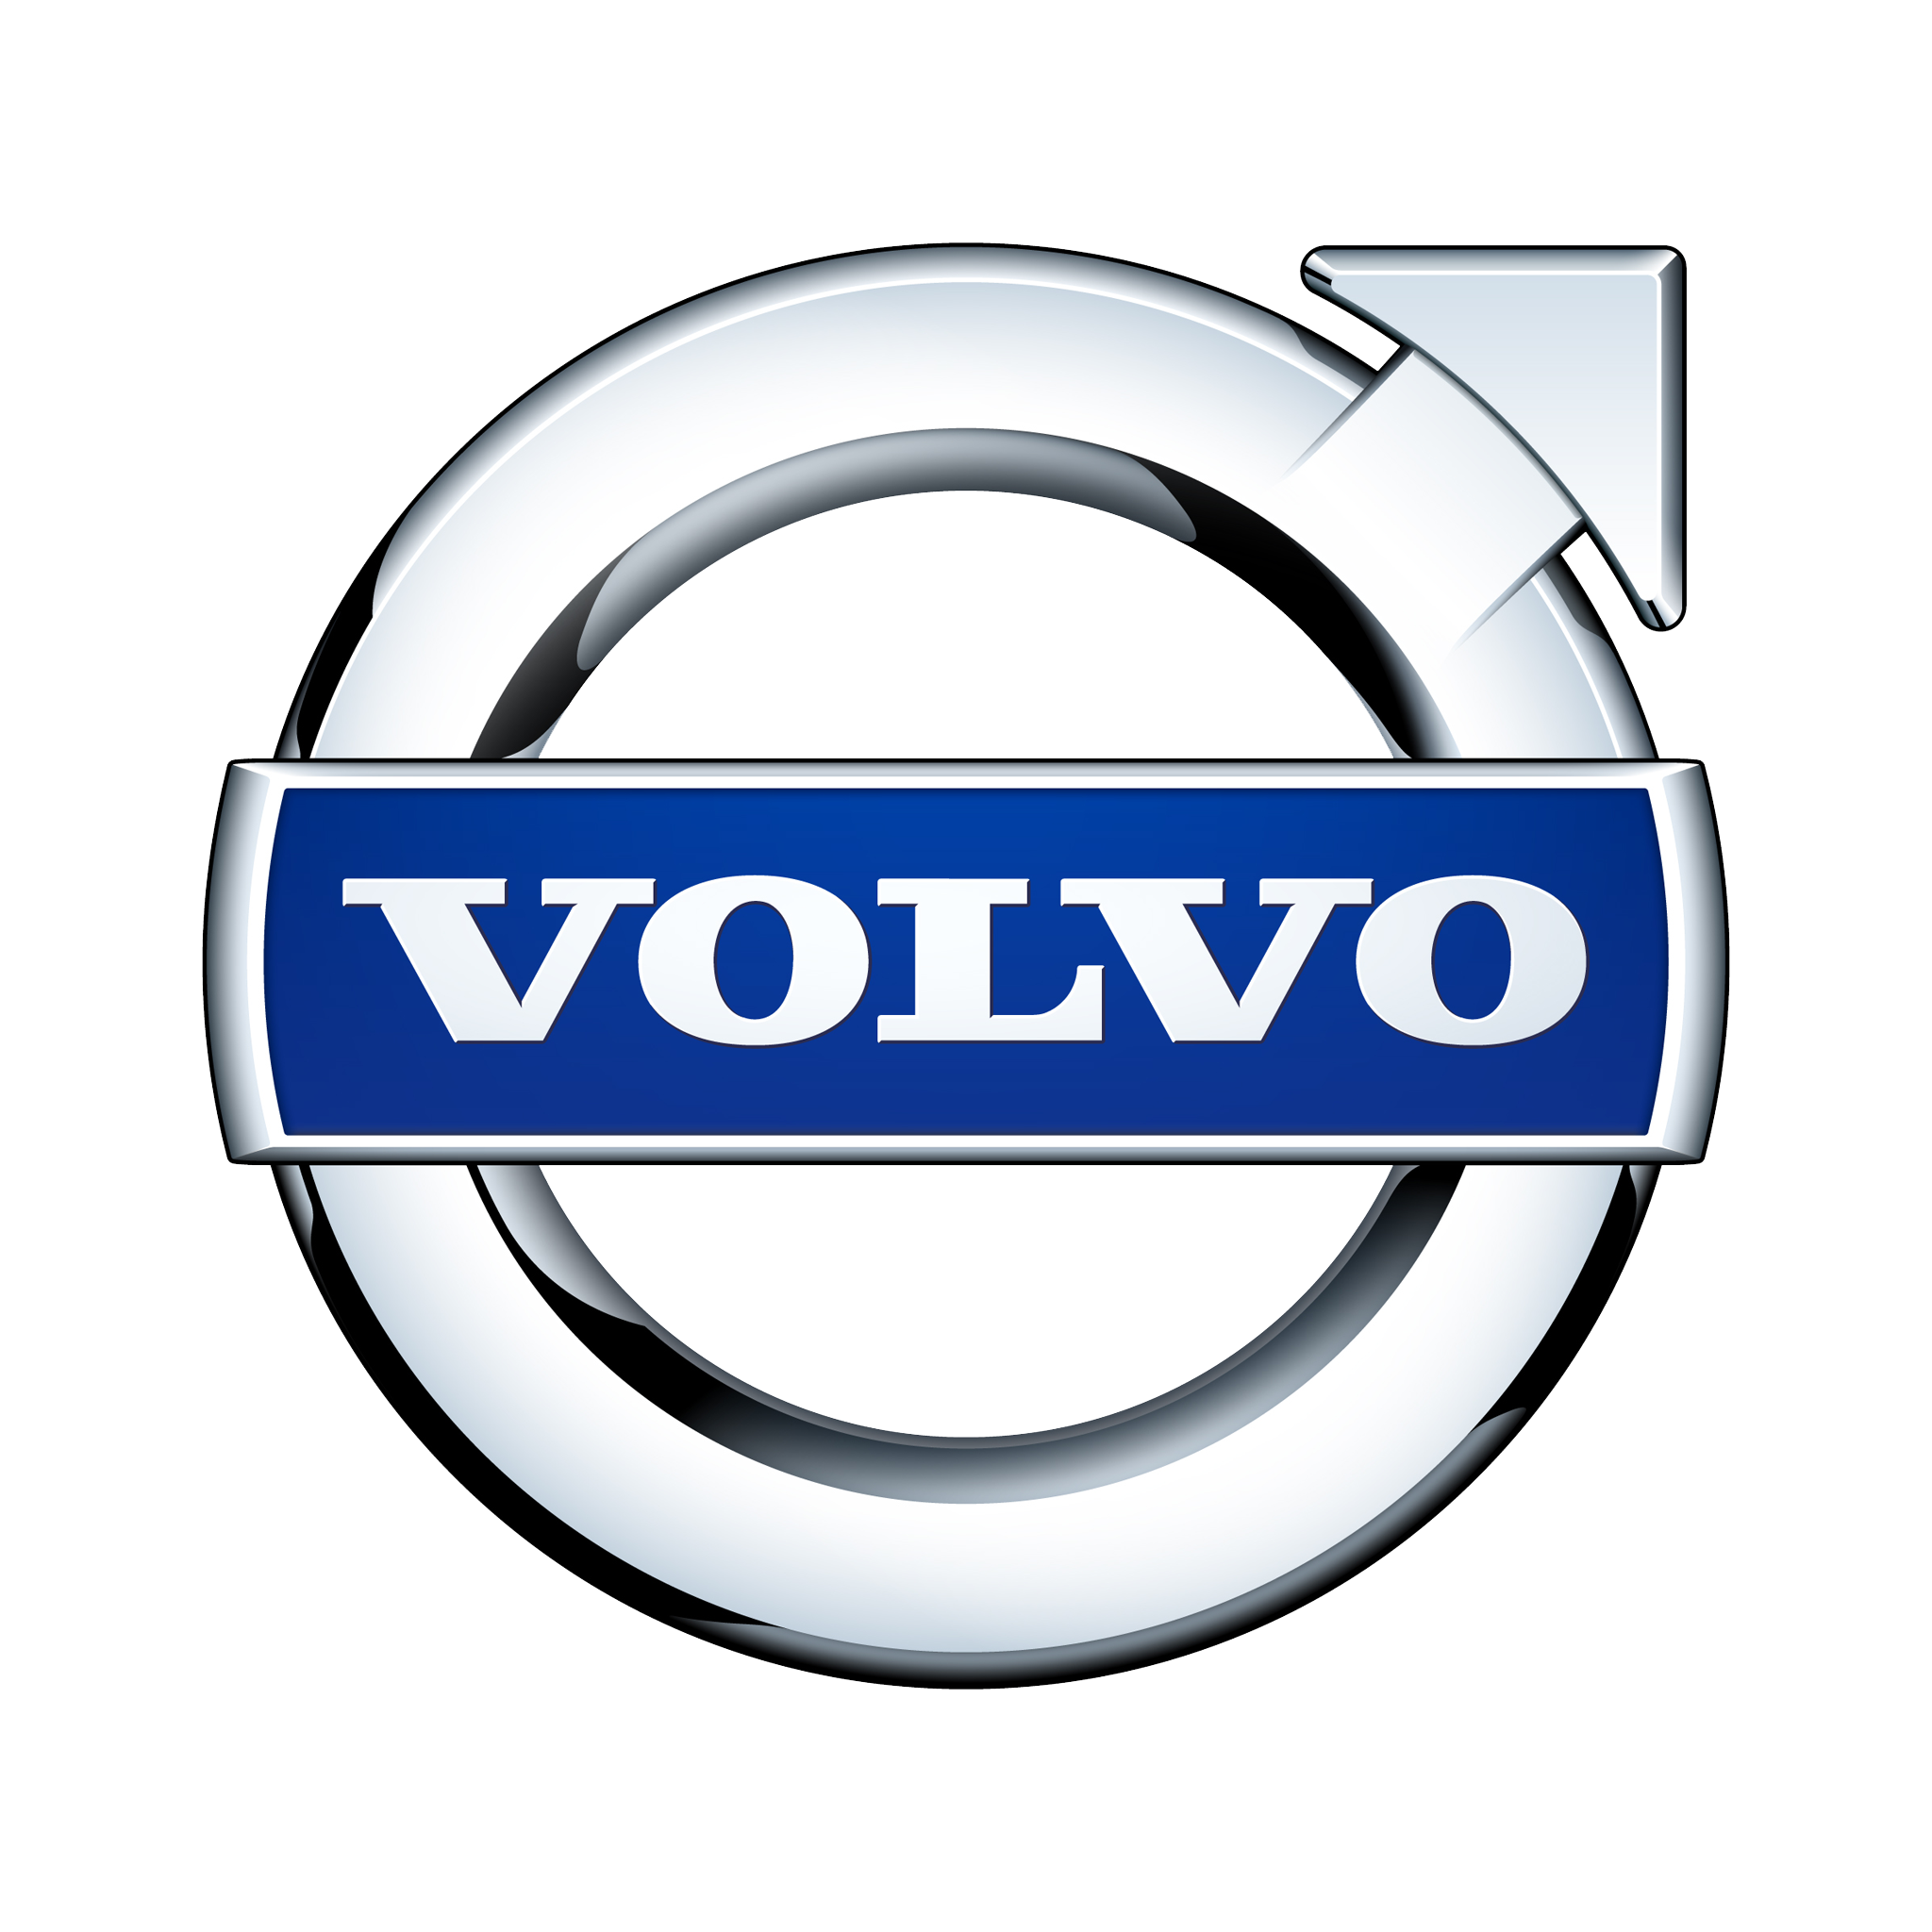 Interfacce Dedicate vetture Volvo